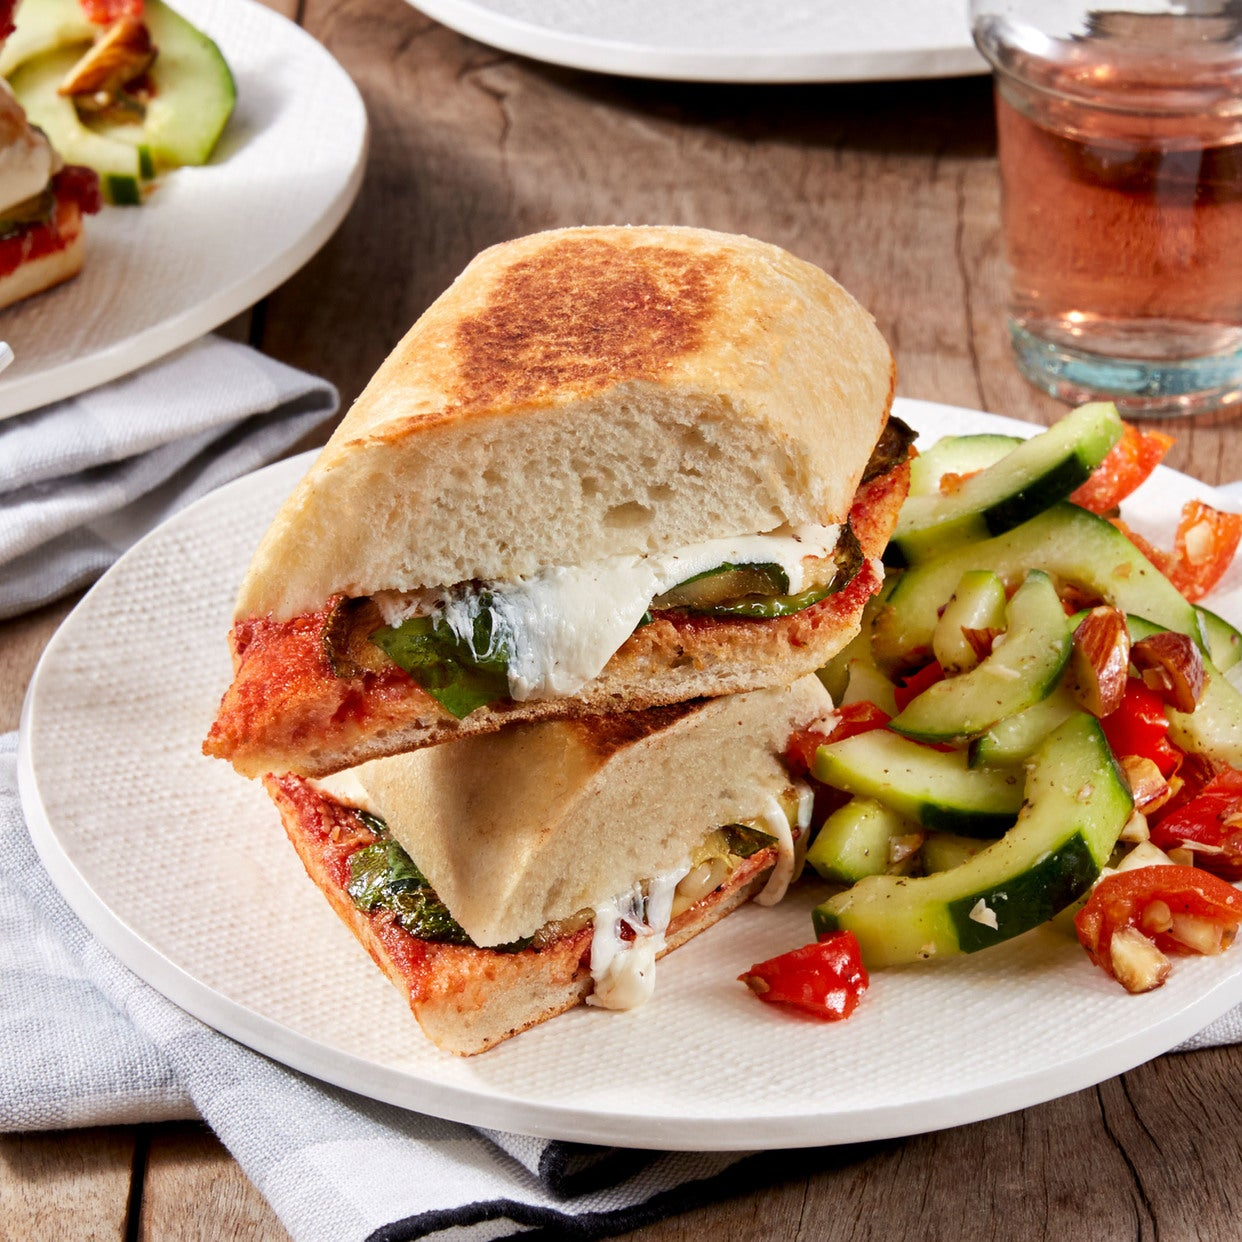 Summer Squash Pizza Paninis with Cucumber & Pickled Pepper Salad